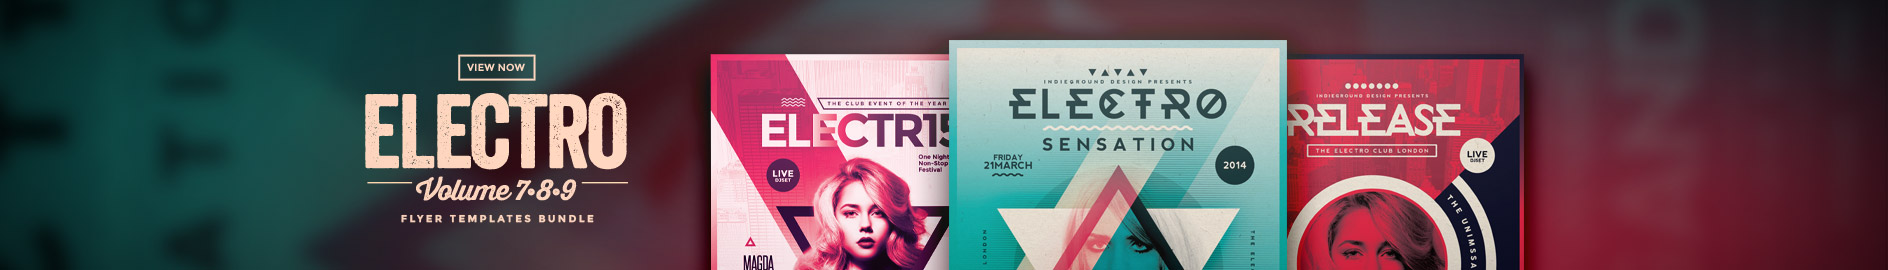 Slider_Bundle_ElectroVol79